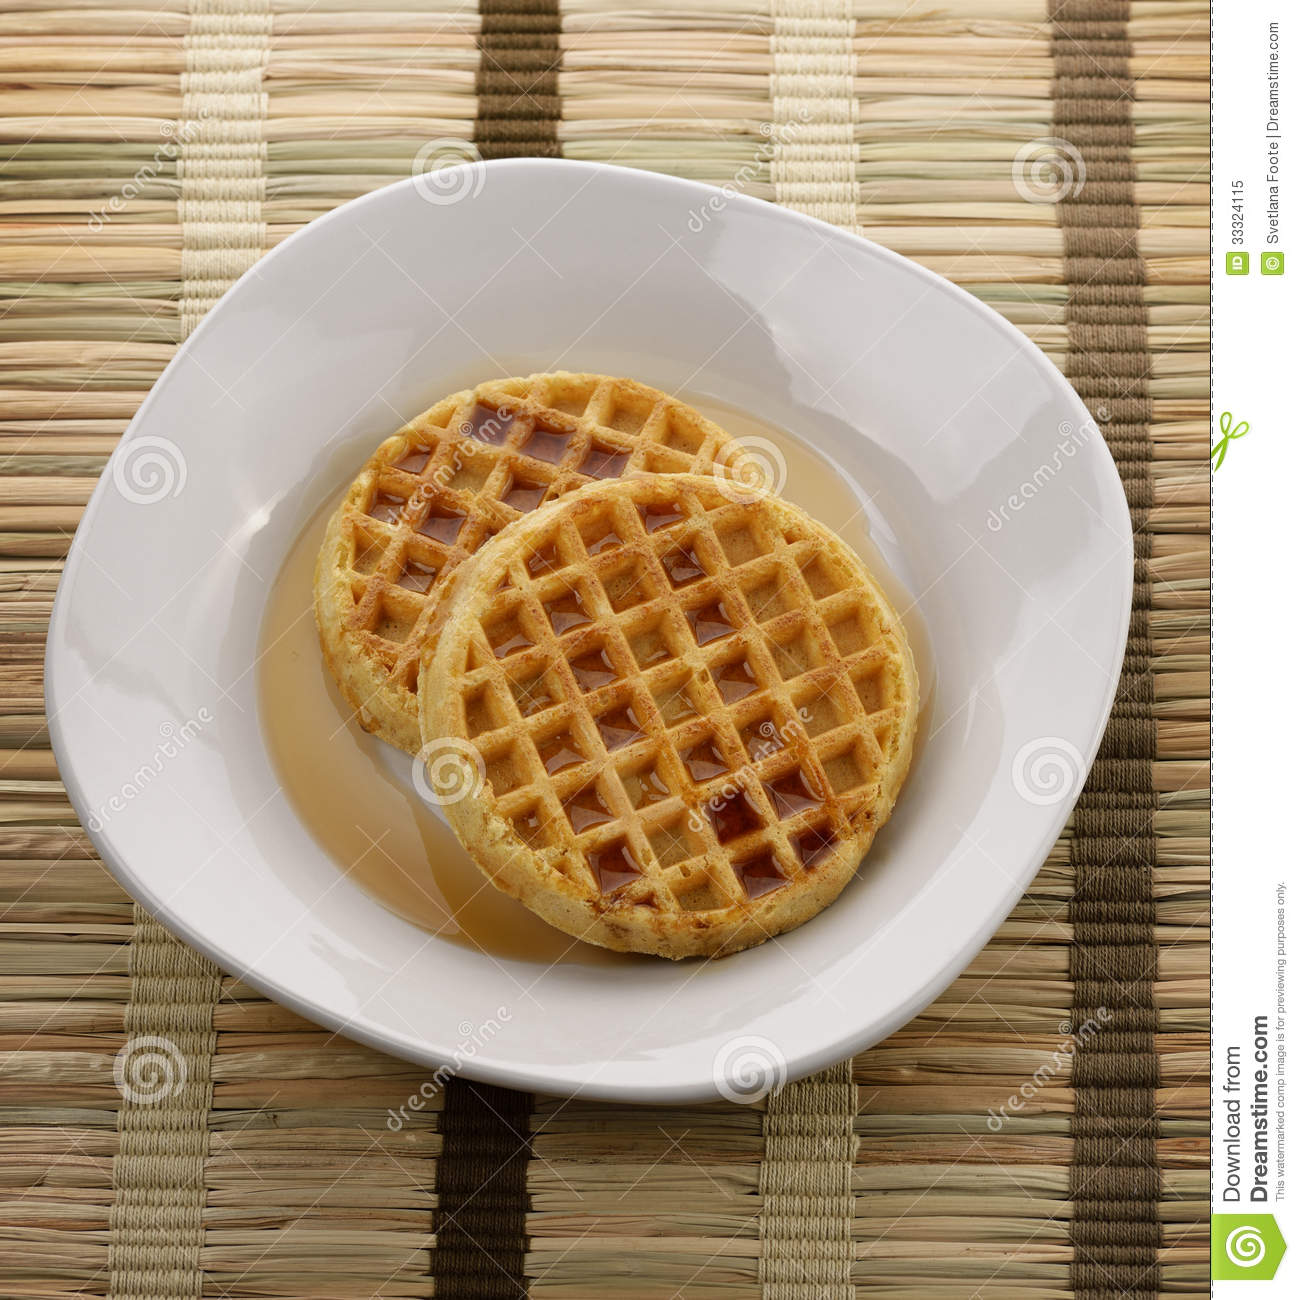 Waffles With Maple Syrup Royalty Free Stock Photo - Image: 33324115